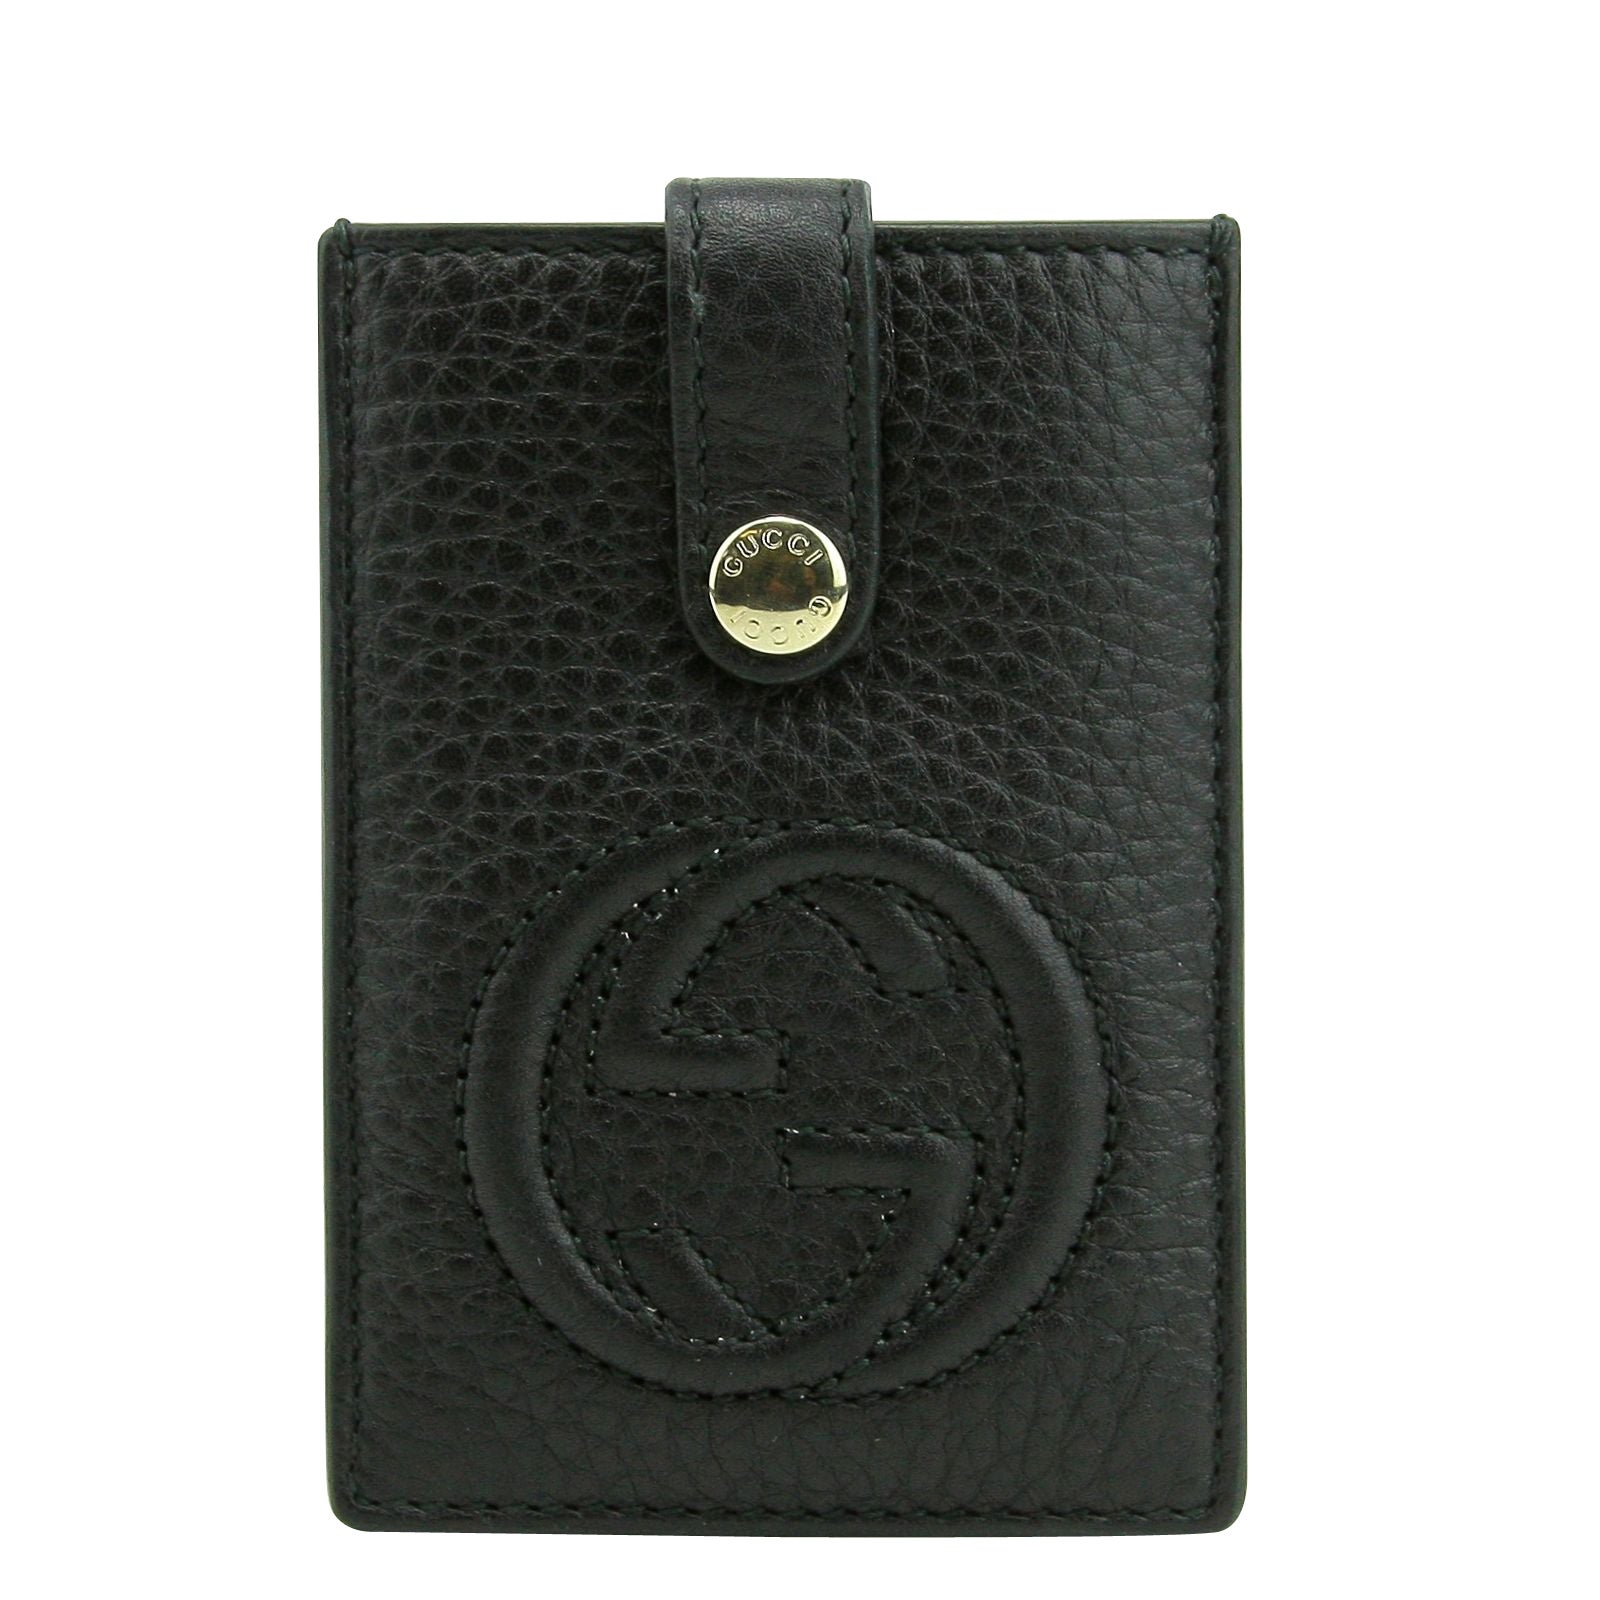 buy online 7d313 5c88e Gucci Women's Interlocking G SOHO Black Leather Credit Card Holder 338331  1000 - One size